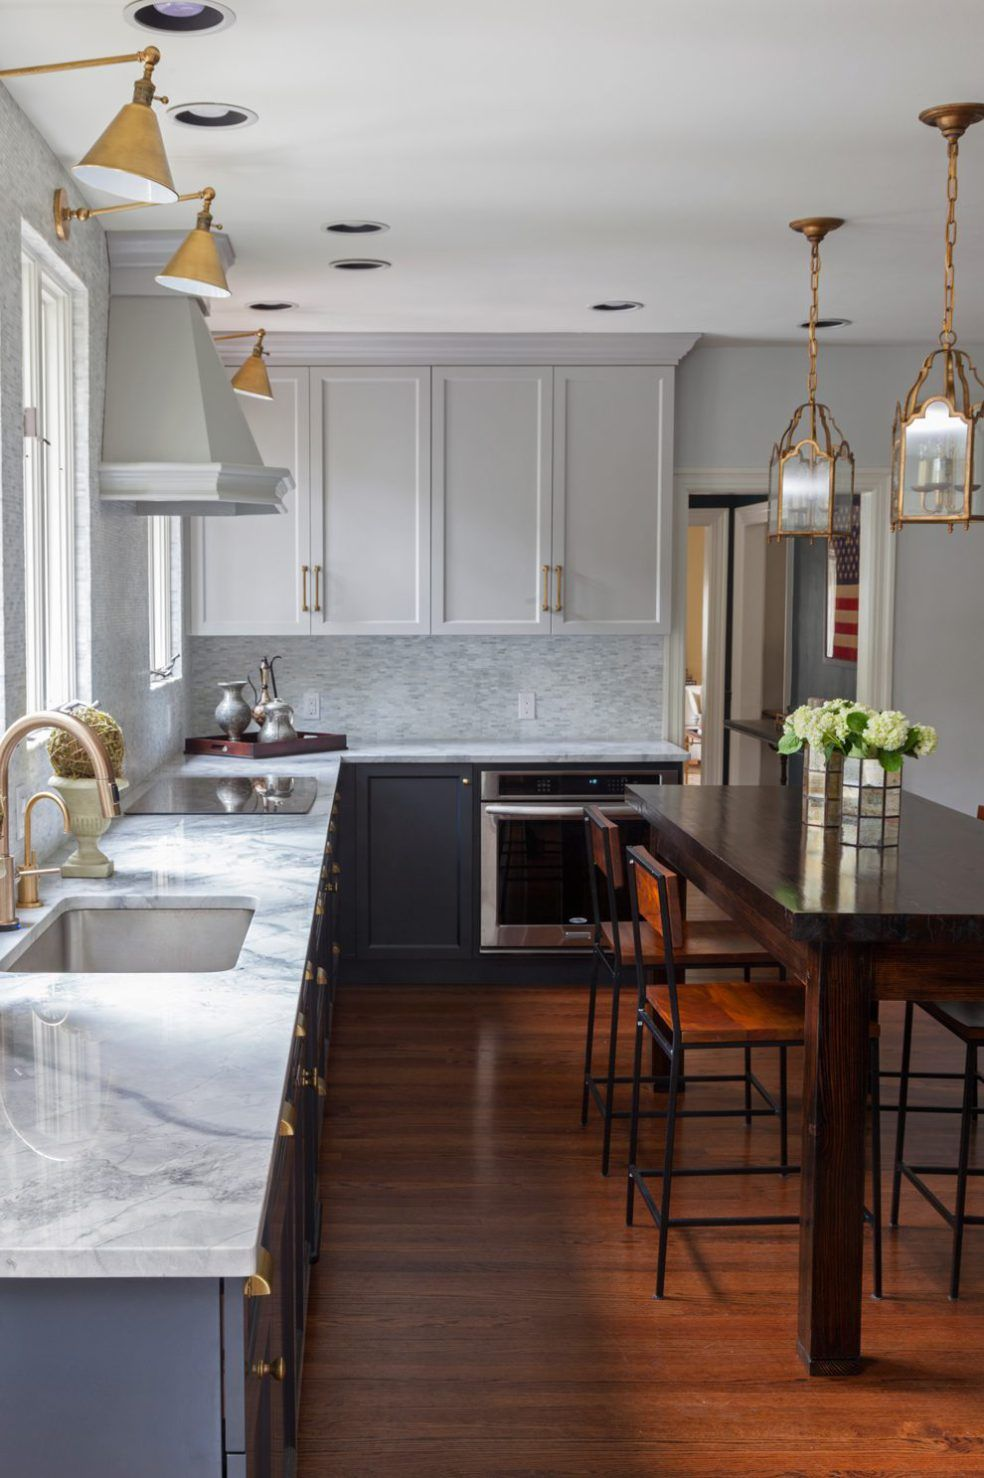 Dark Light Oak Maple Cherry Cabinetry And Most Expensive Wood Kitchen Cabinets Check The P Kitchen Renovation Kitchen Cabinet Design New Kitchen Cabinets